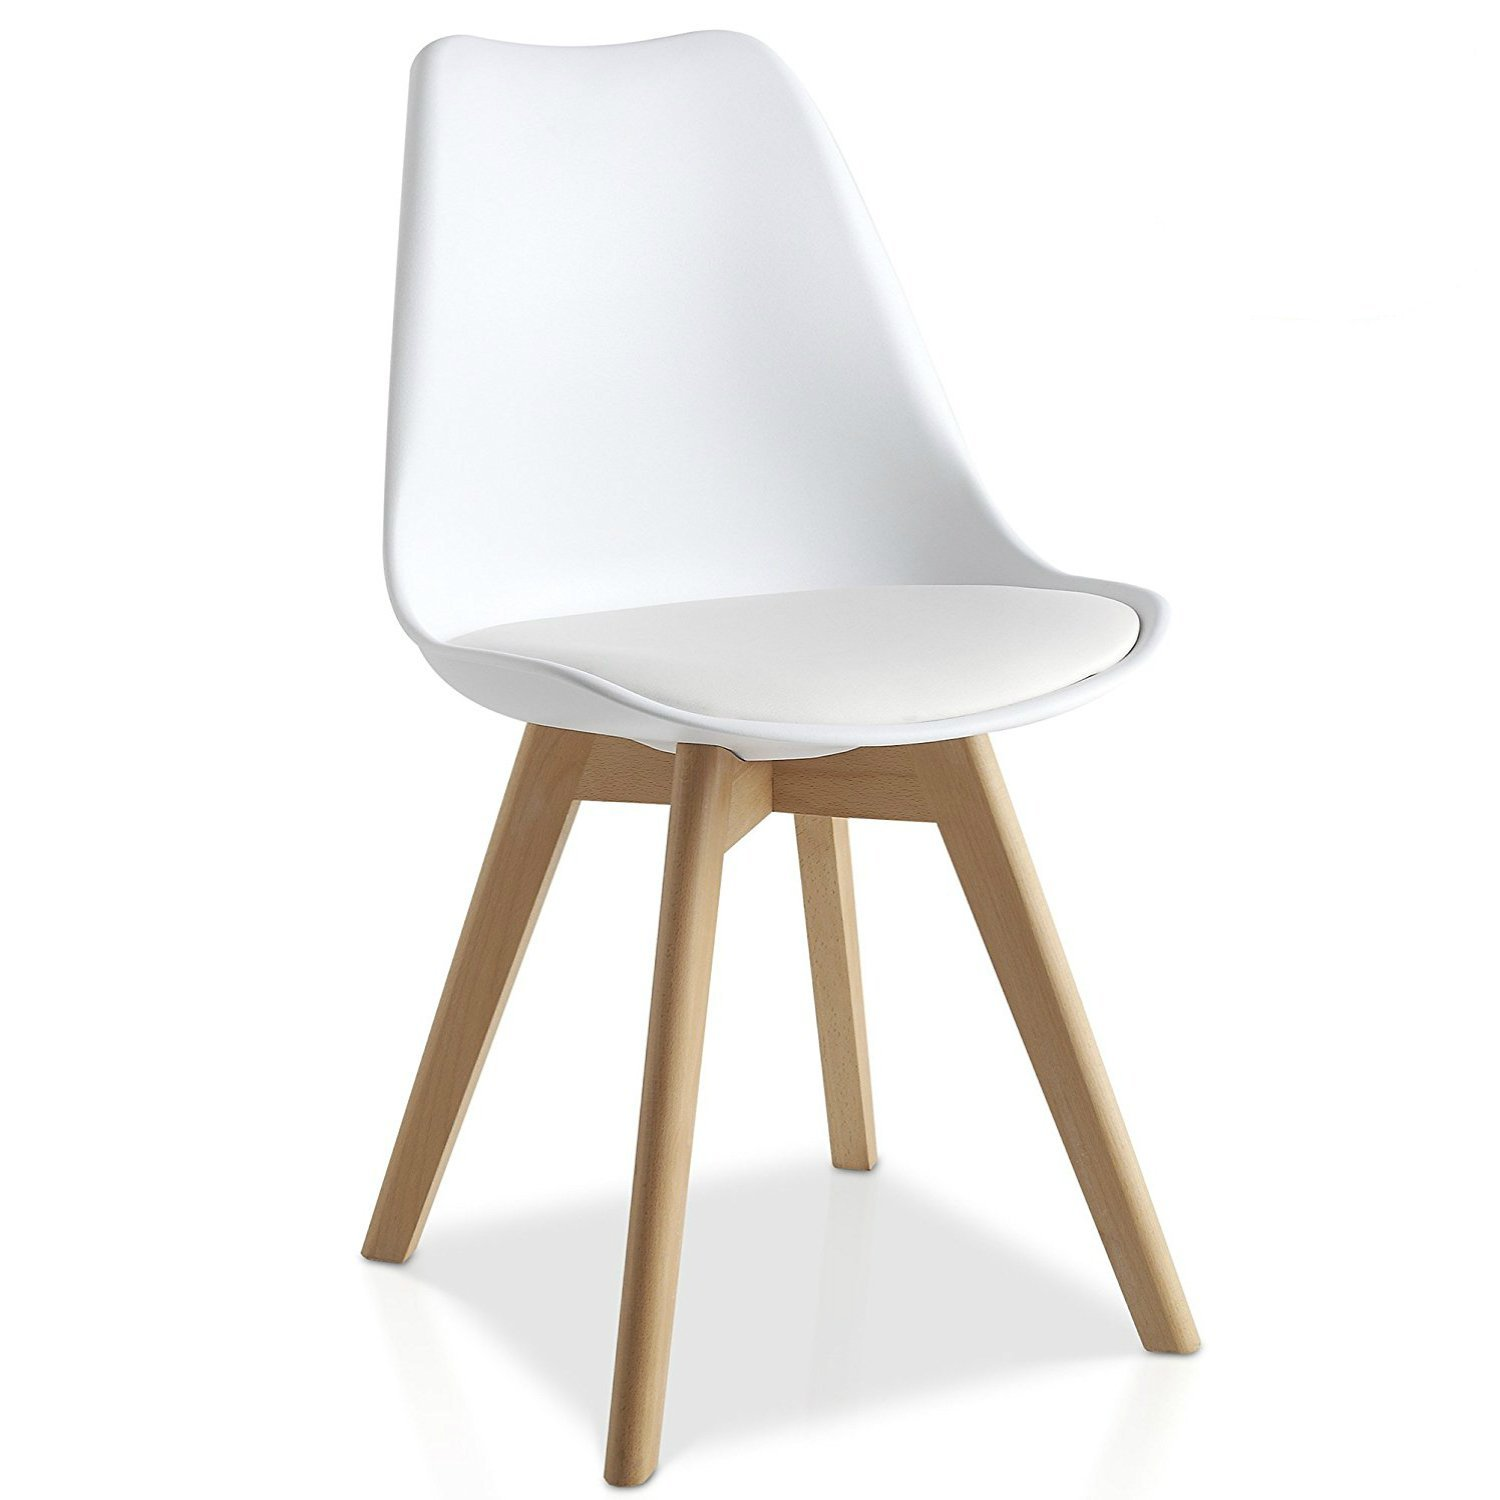 Mmilo Tulip Pyramid Dining Chair Office Chair With Solid Wood Legs Pu Faux Leather Cushion White